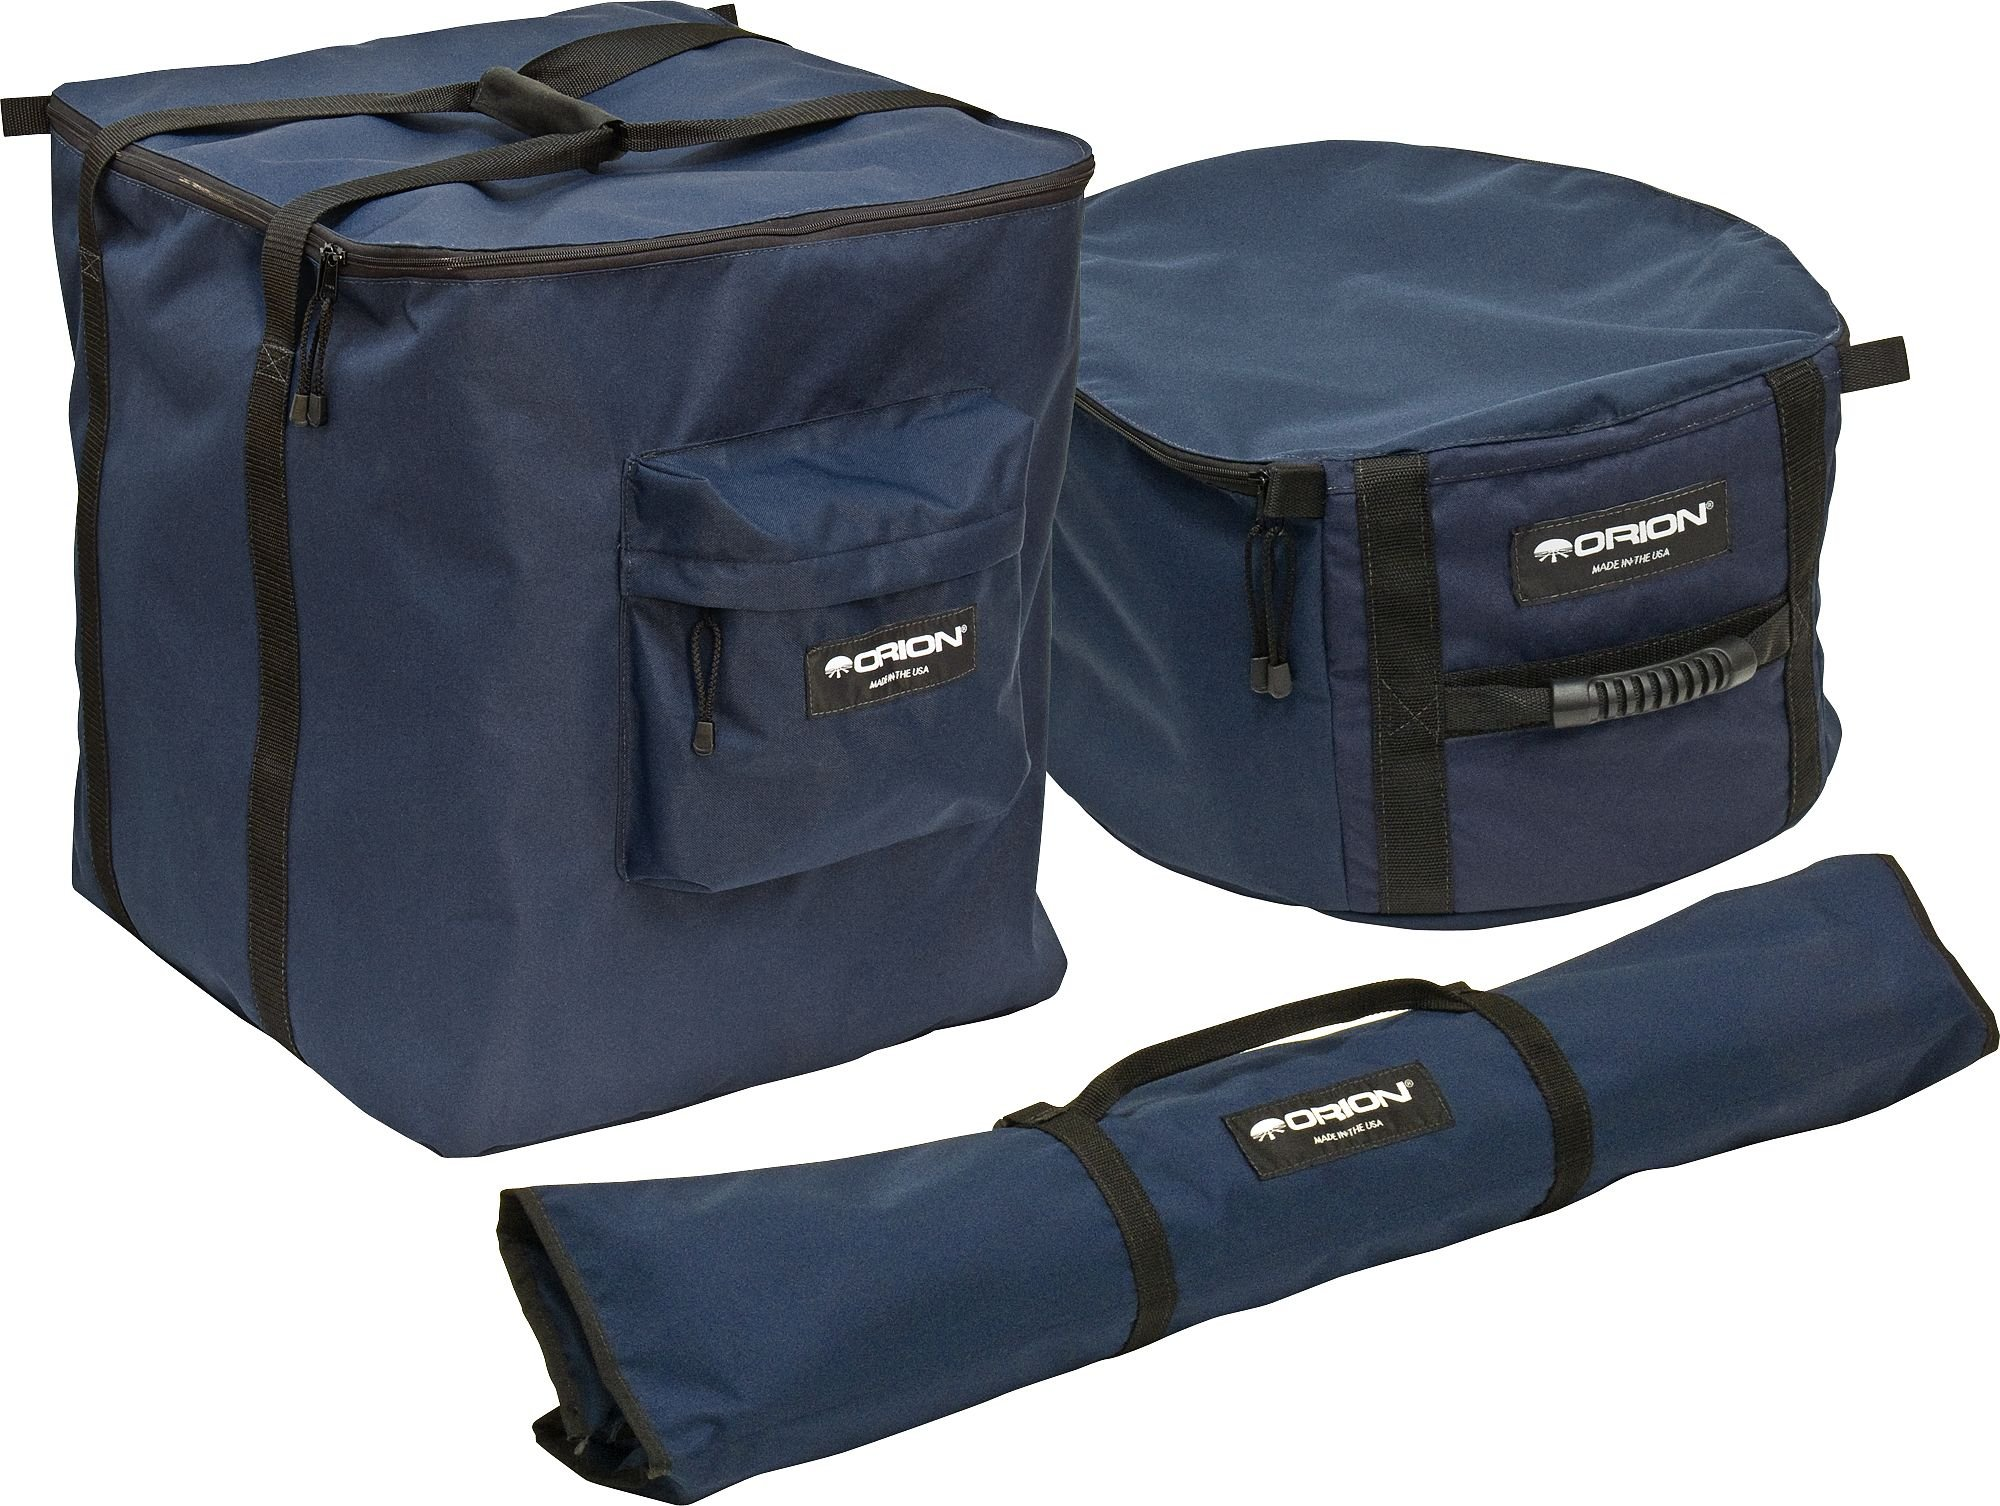 Orion 15099 Set of  SkyQuest XX14 Padded Telescope Cases by Orion